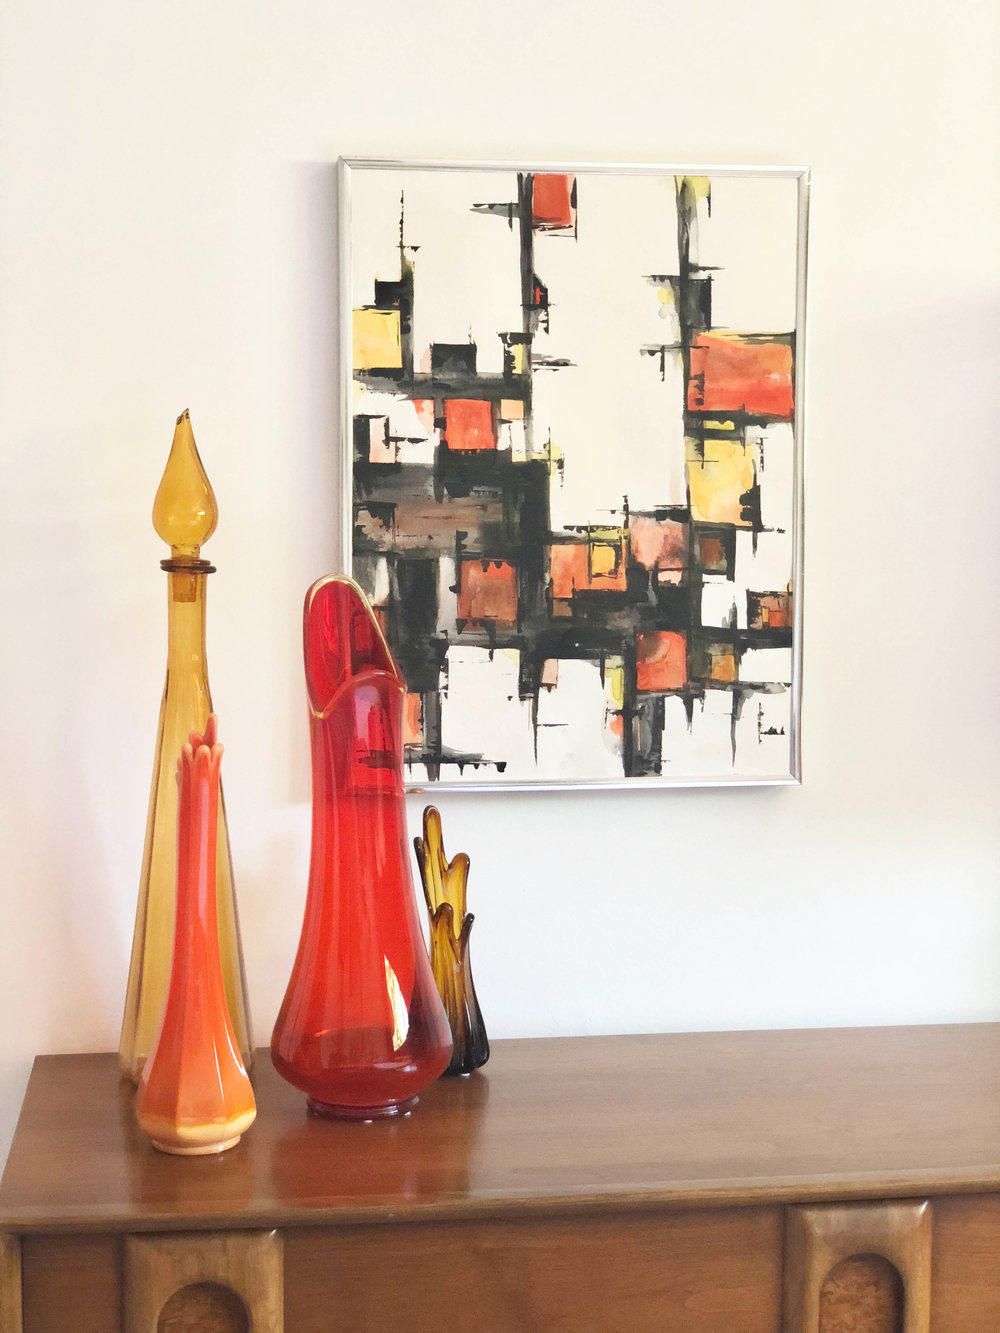 Jenny created so many vibrant paintings throughout their home .... with perfect accessories.